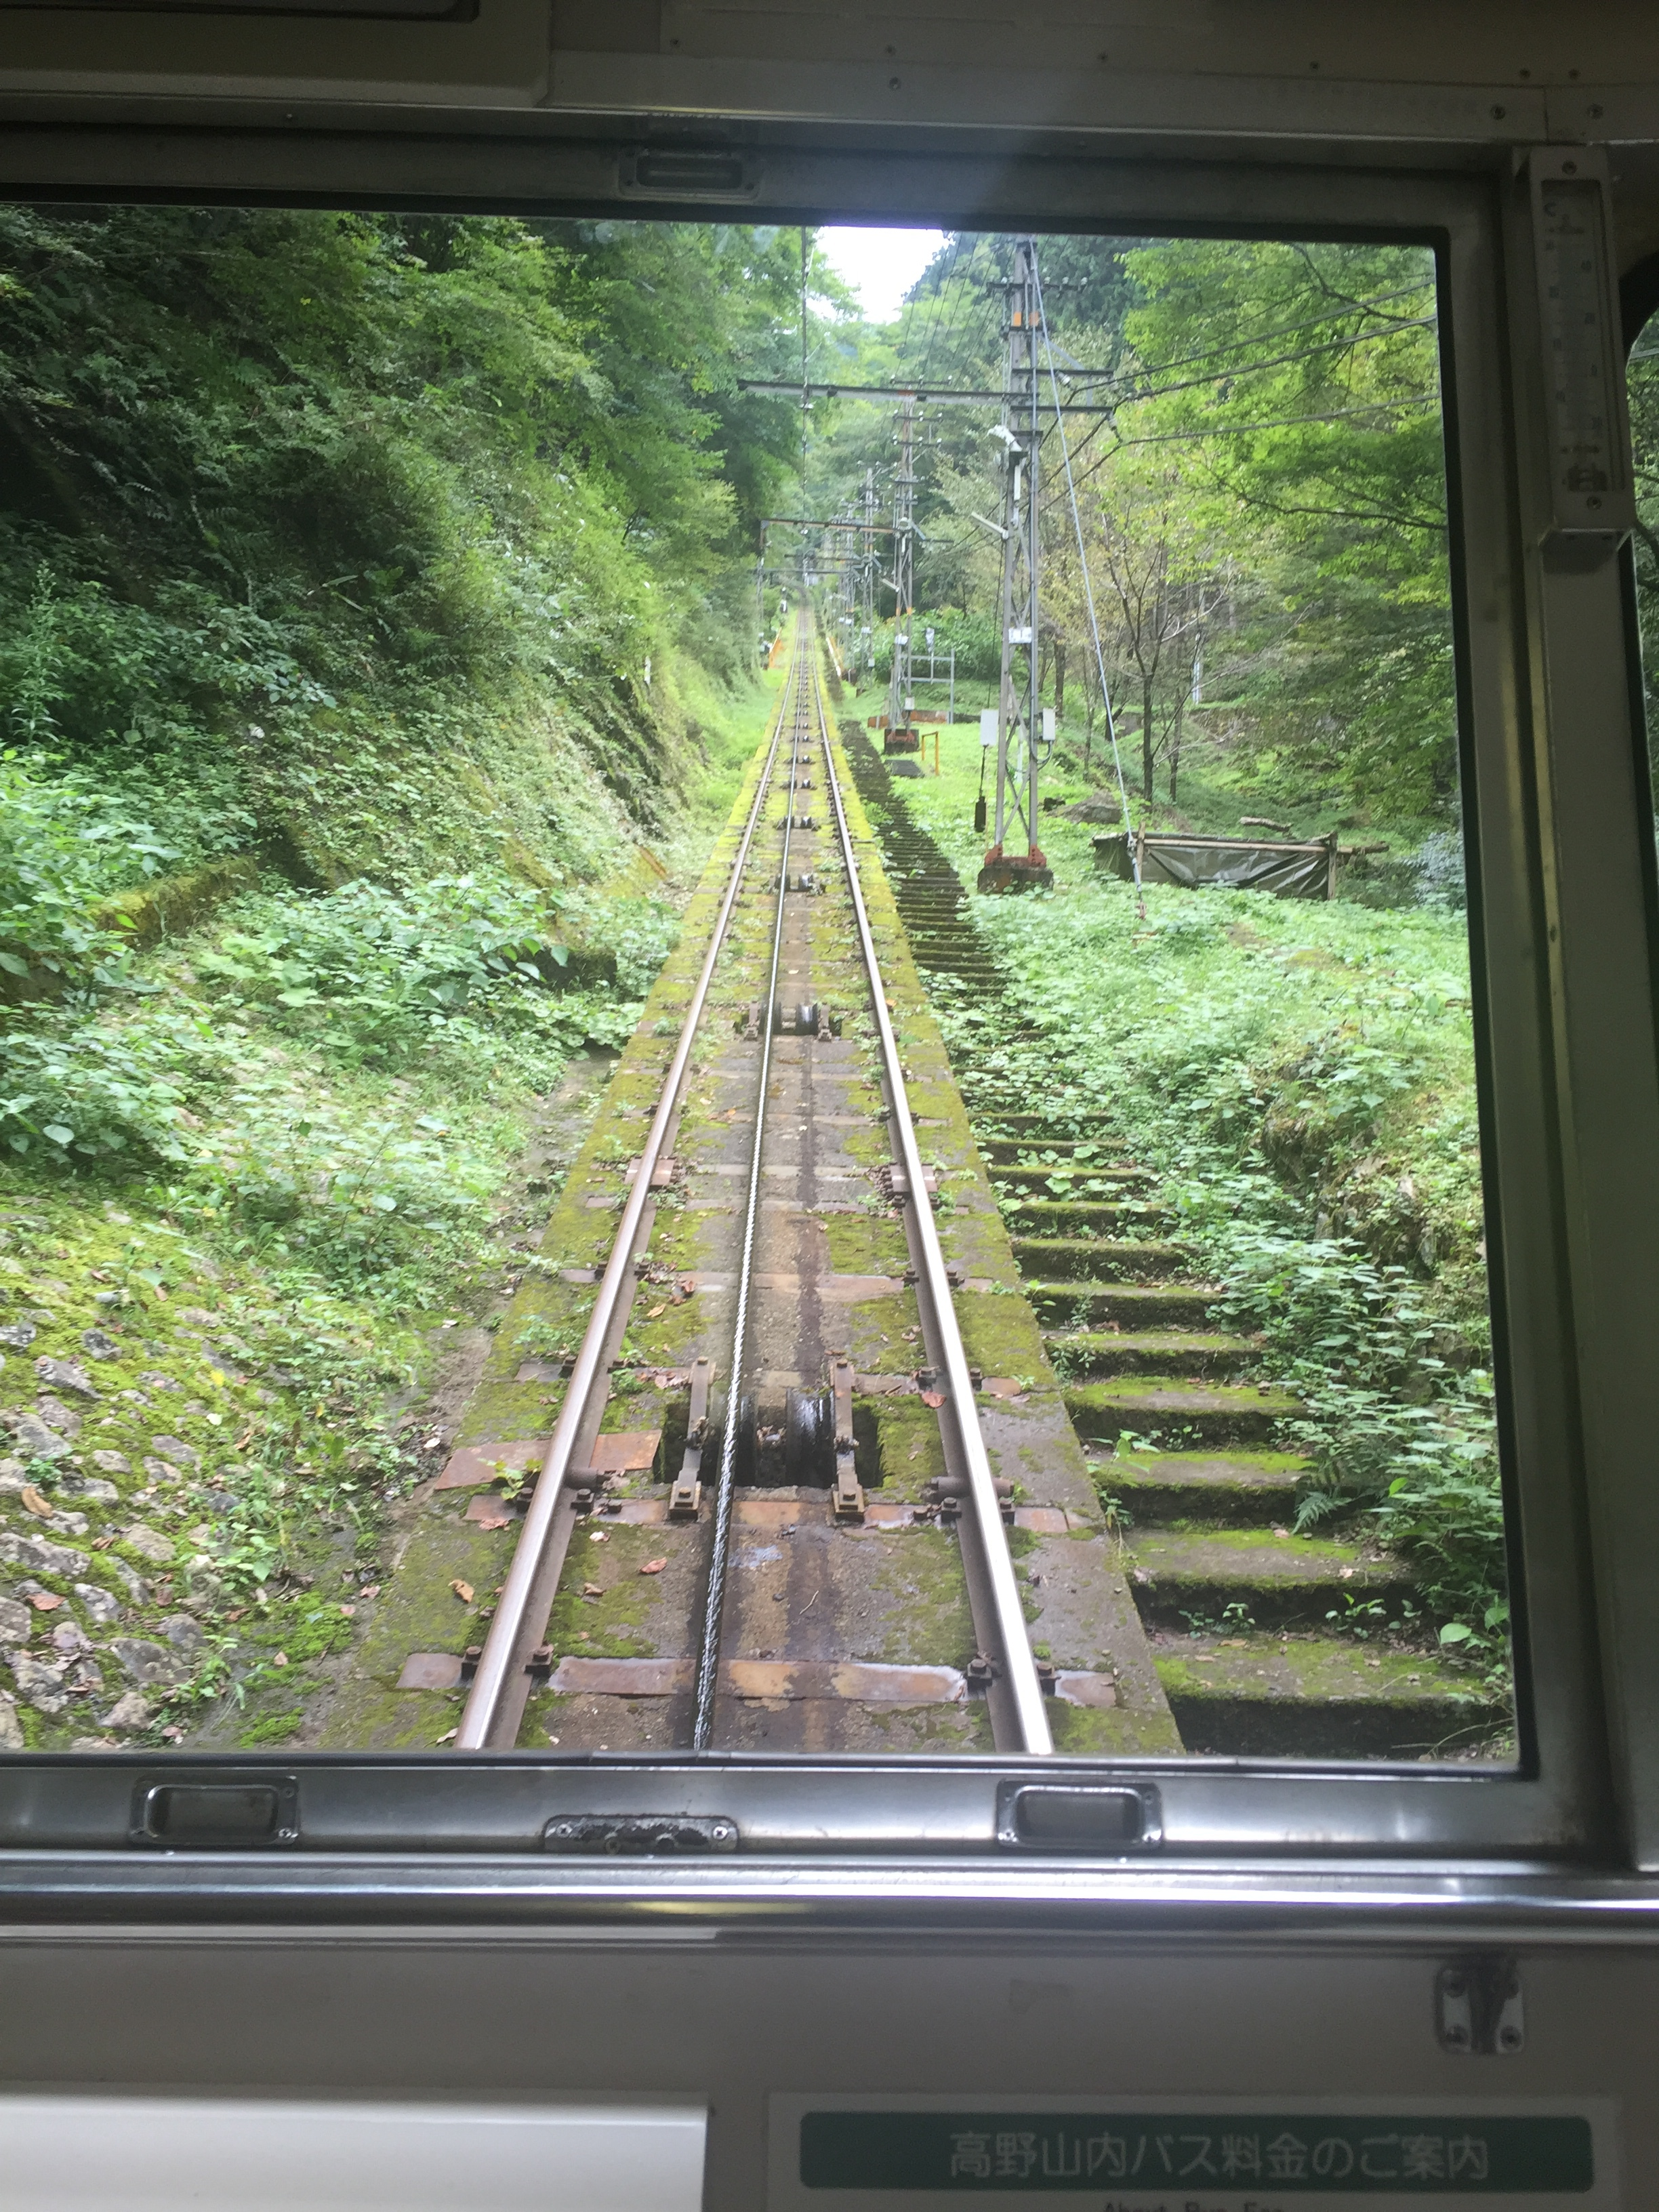 Cable Car to Koyasan in the mountains of Japan. Home of lovely places to stay w/ vegan food